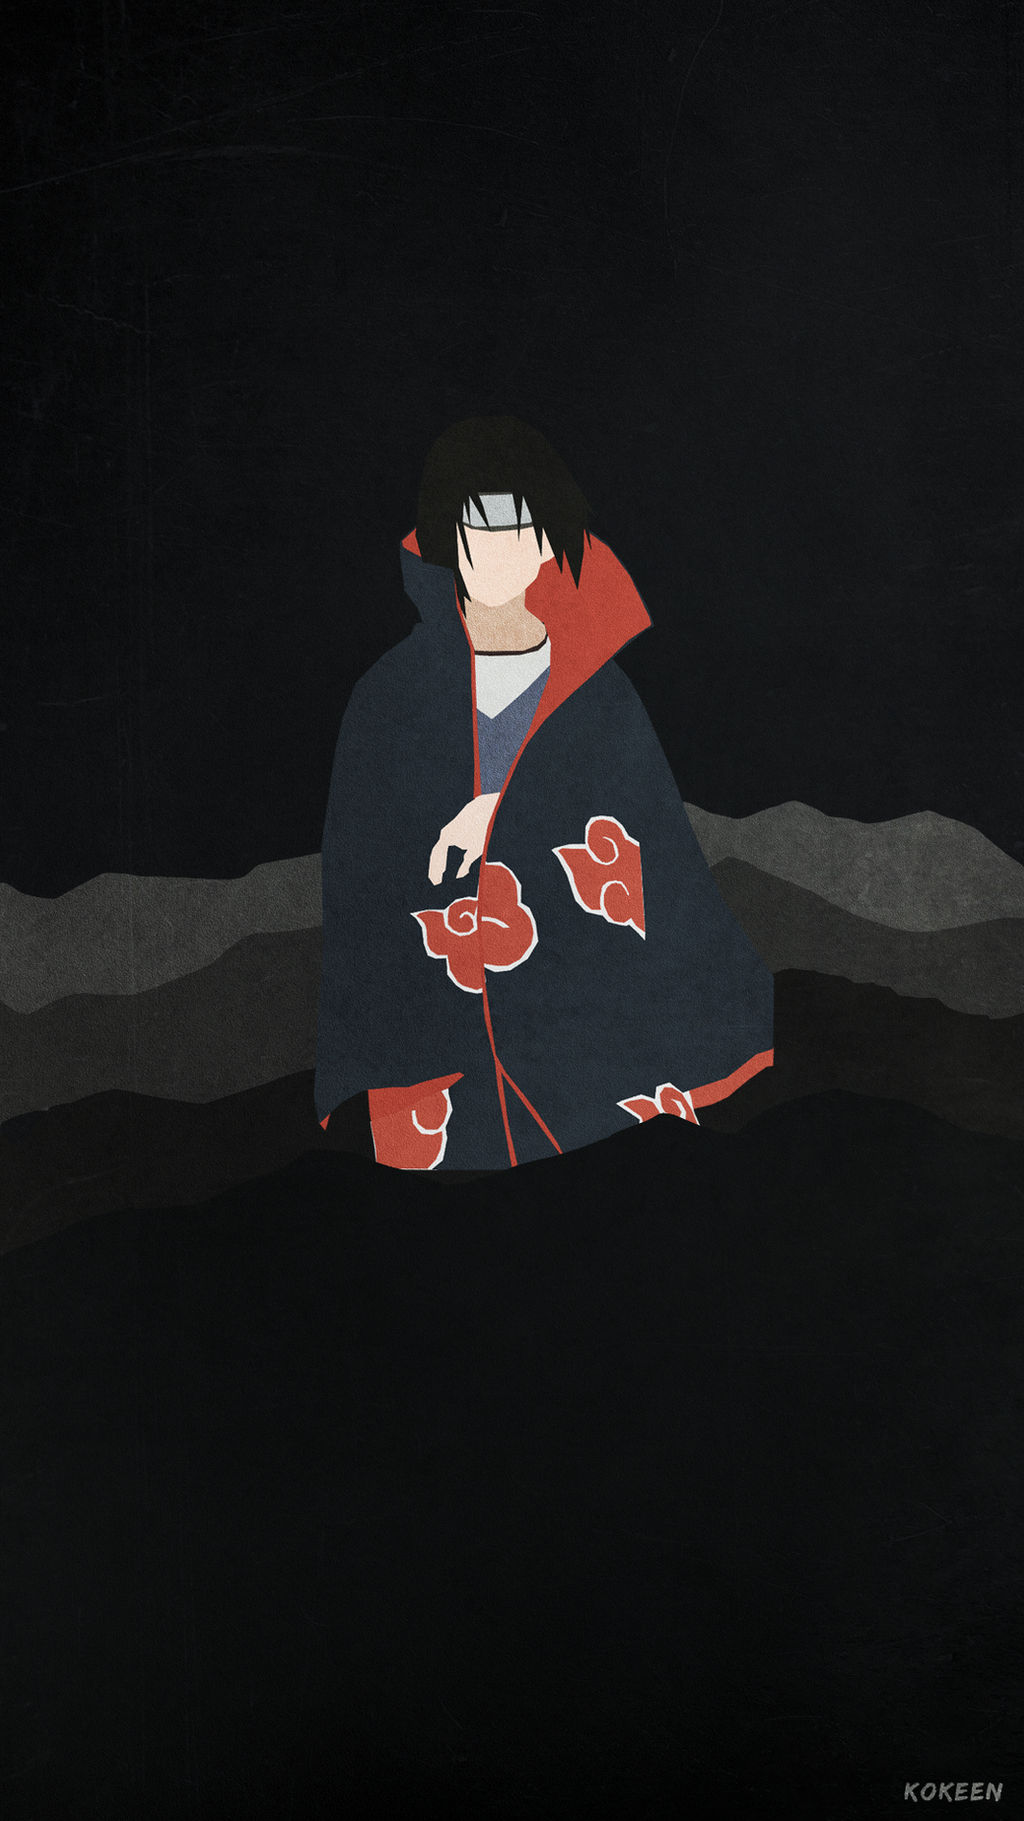 itachi minimalist phone wallpaper by kokeen dbti7i6